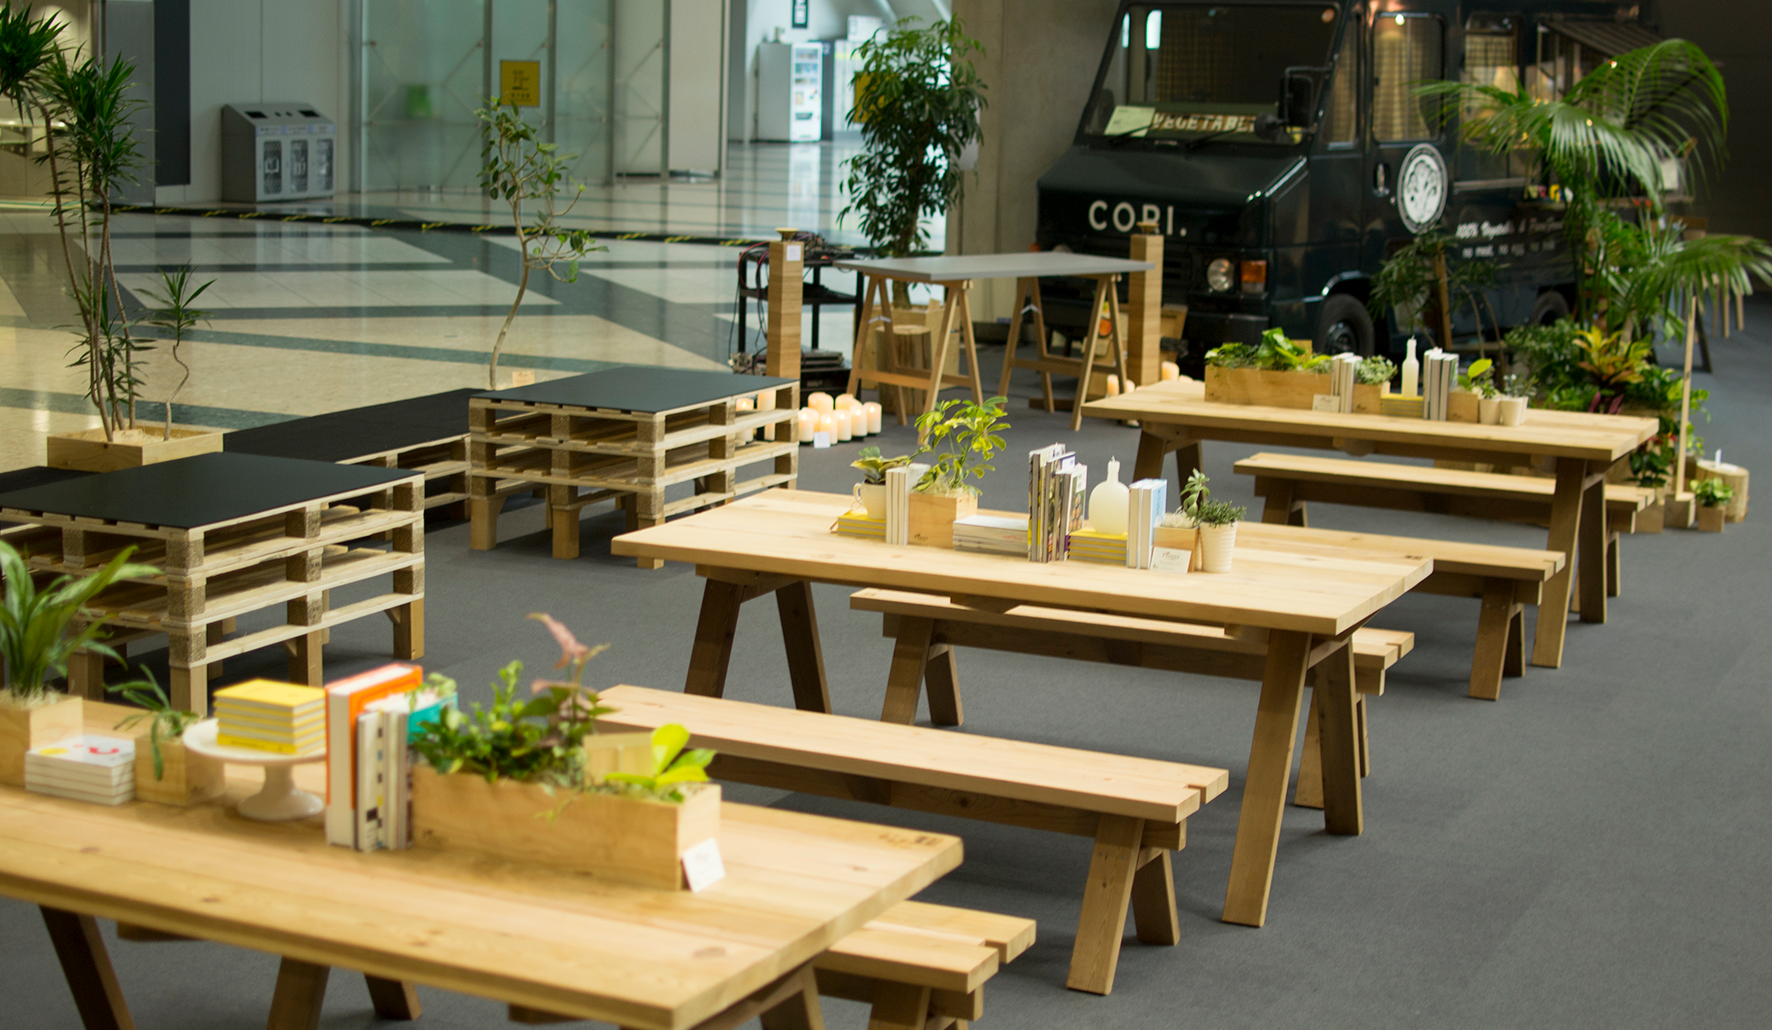 Early Birds Cafe at Interior Lifestyle Tokyo 2014